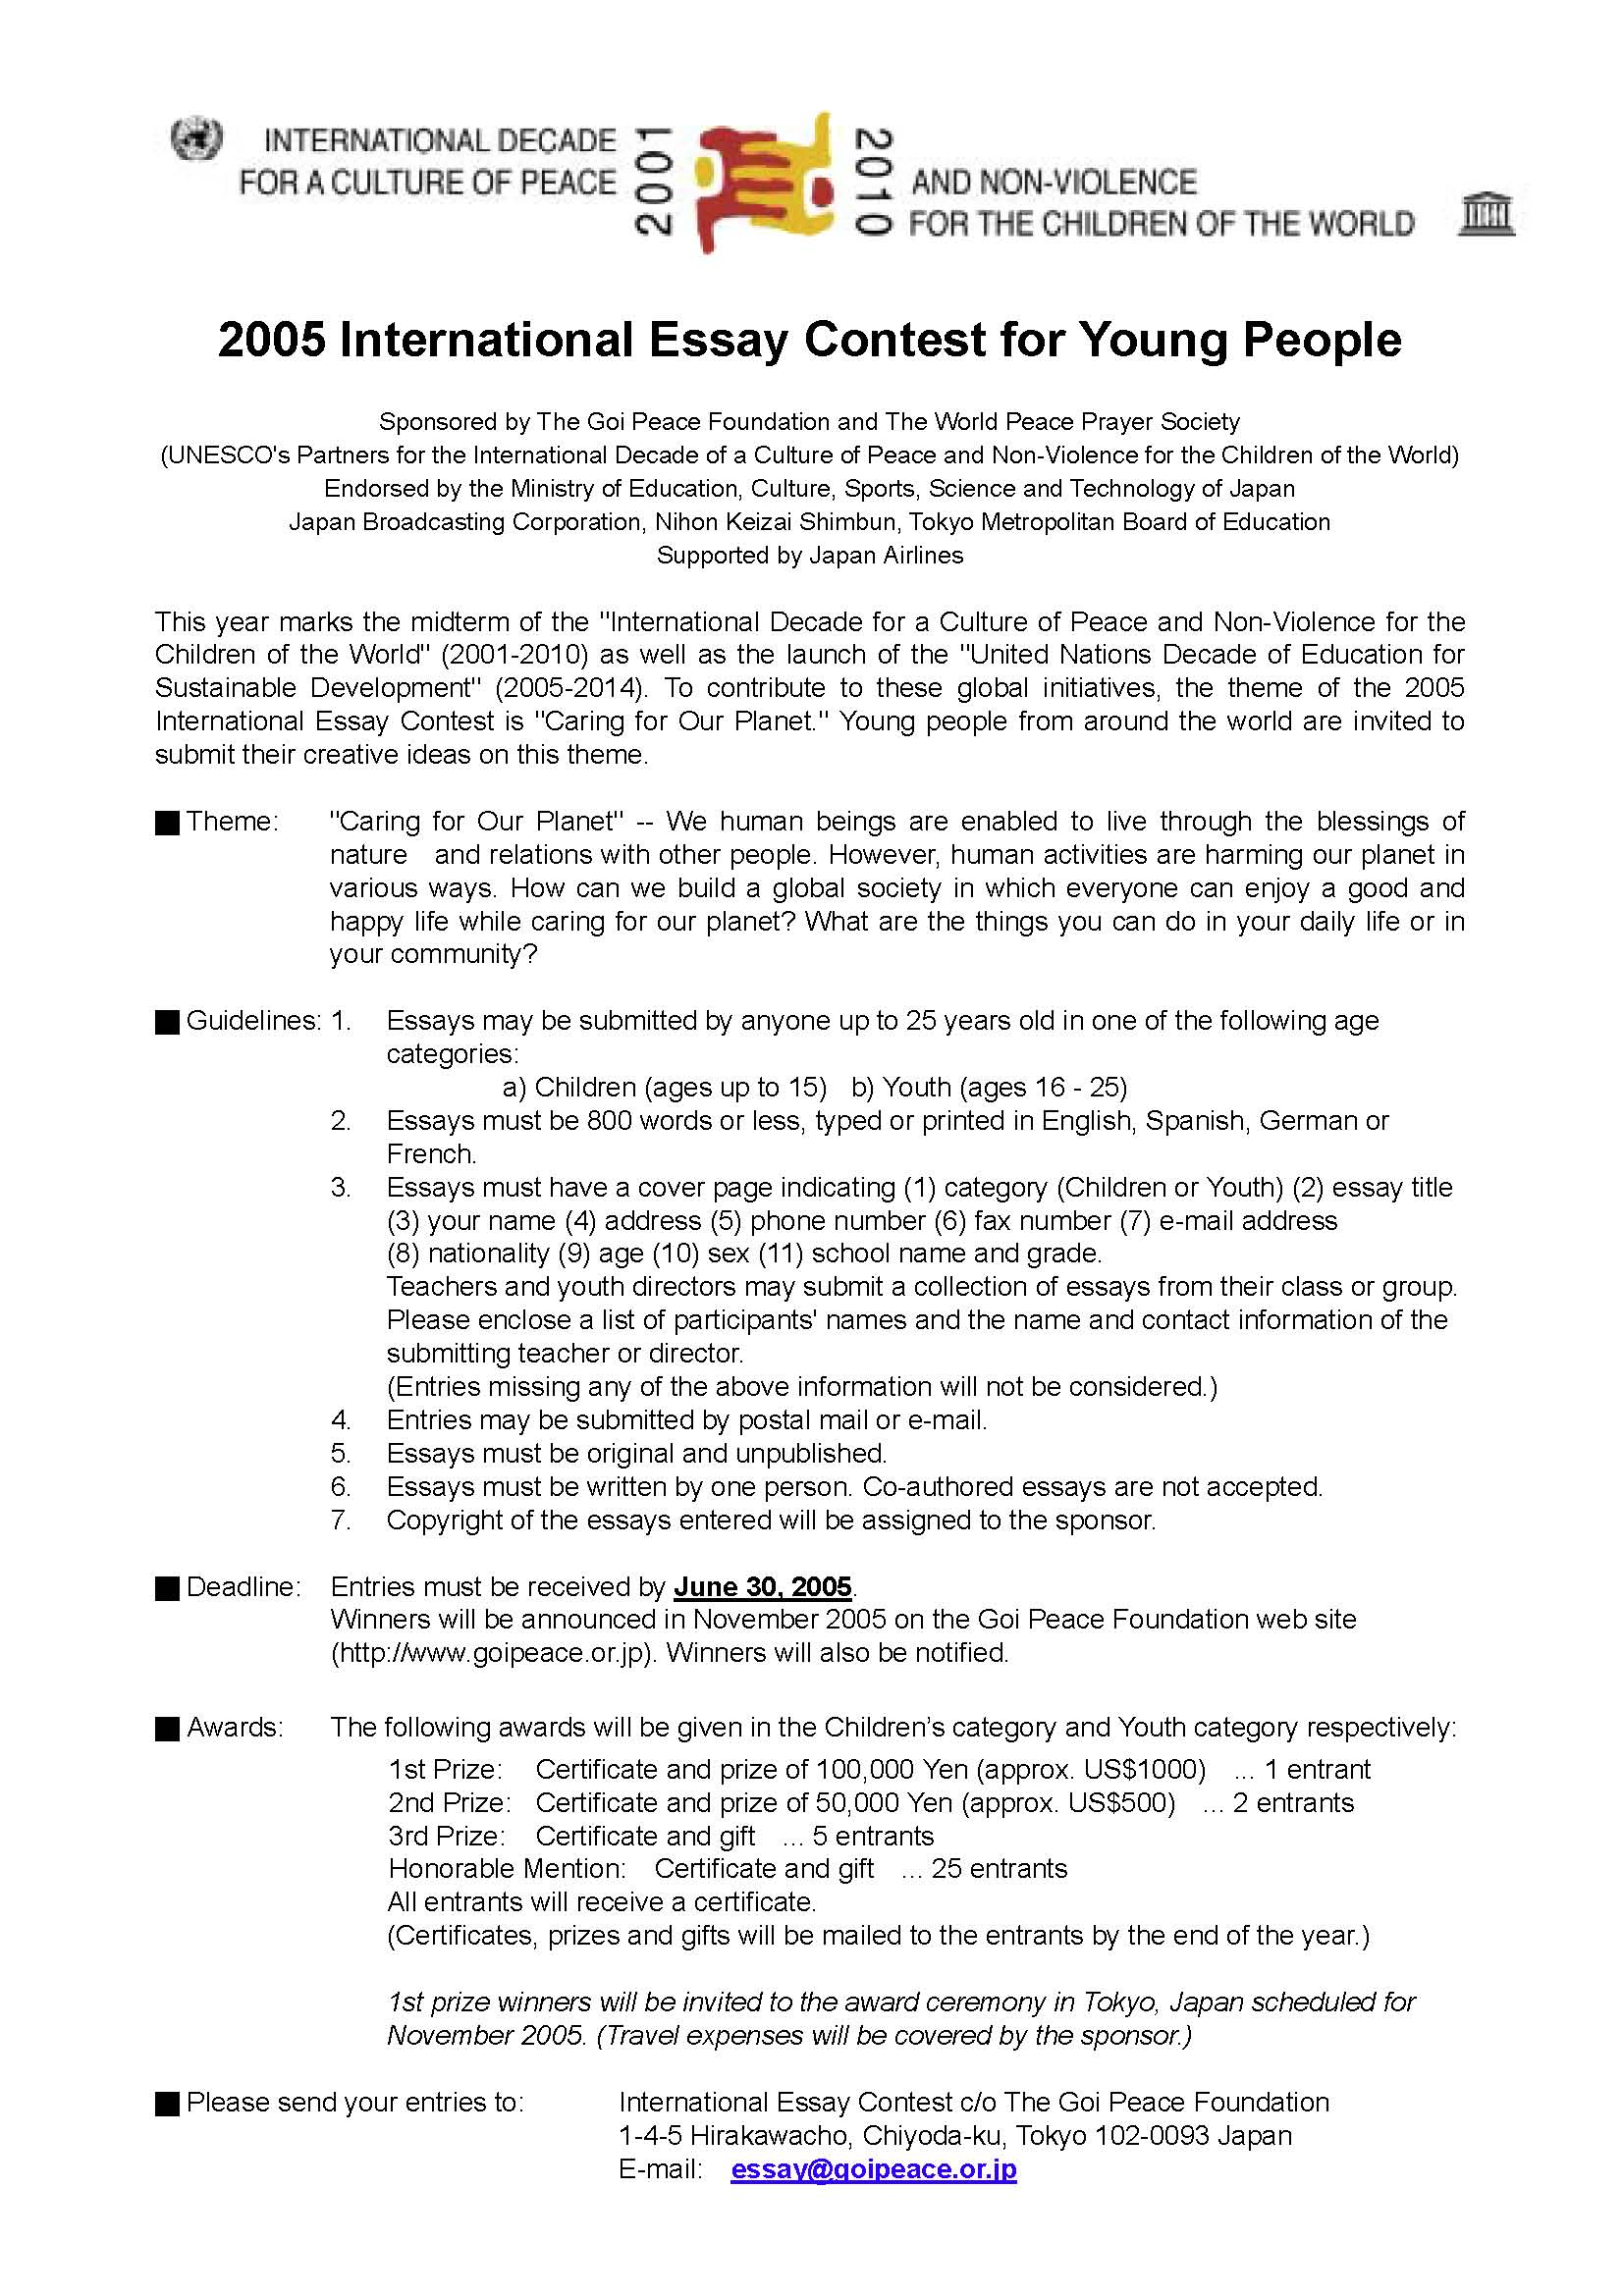 Term Paper Essay Past Contests The Goi Peace Foundation  High School Essays Samples also Examples Of A Proposal Essay Science And Technology Essay Science And Literature Essay Science  Topics For A Proposal Essay